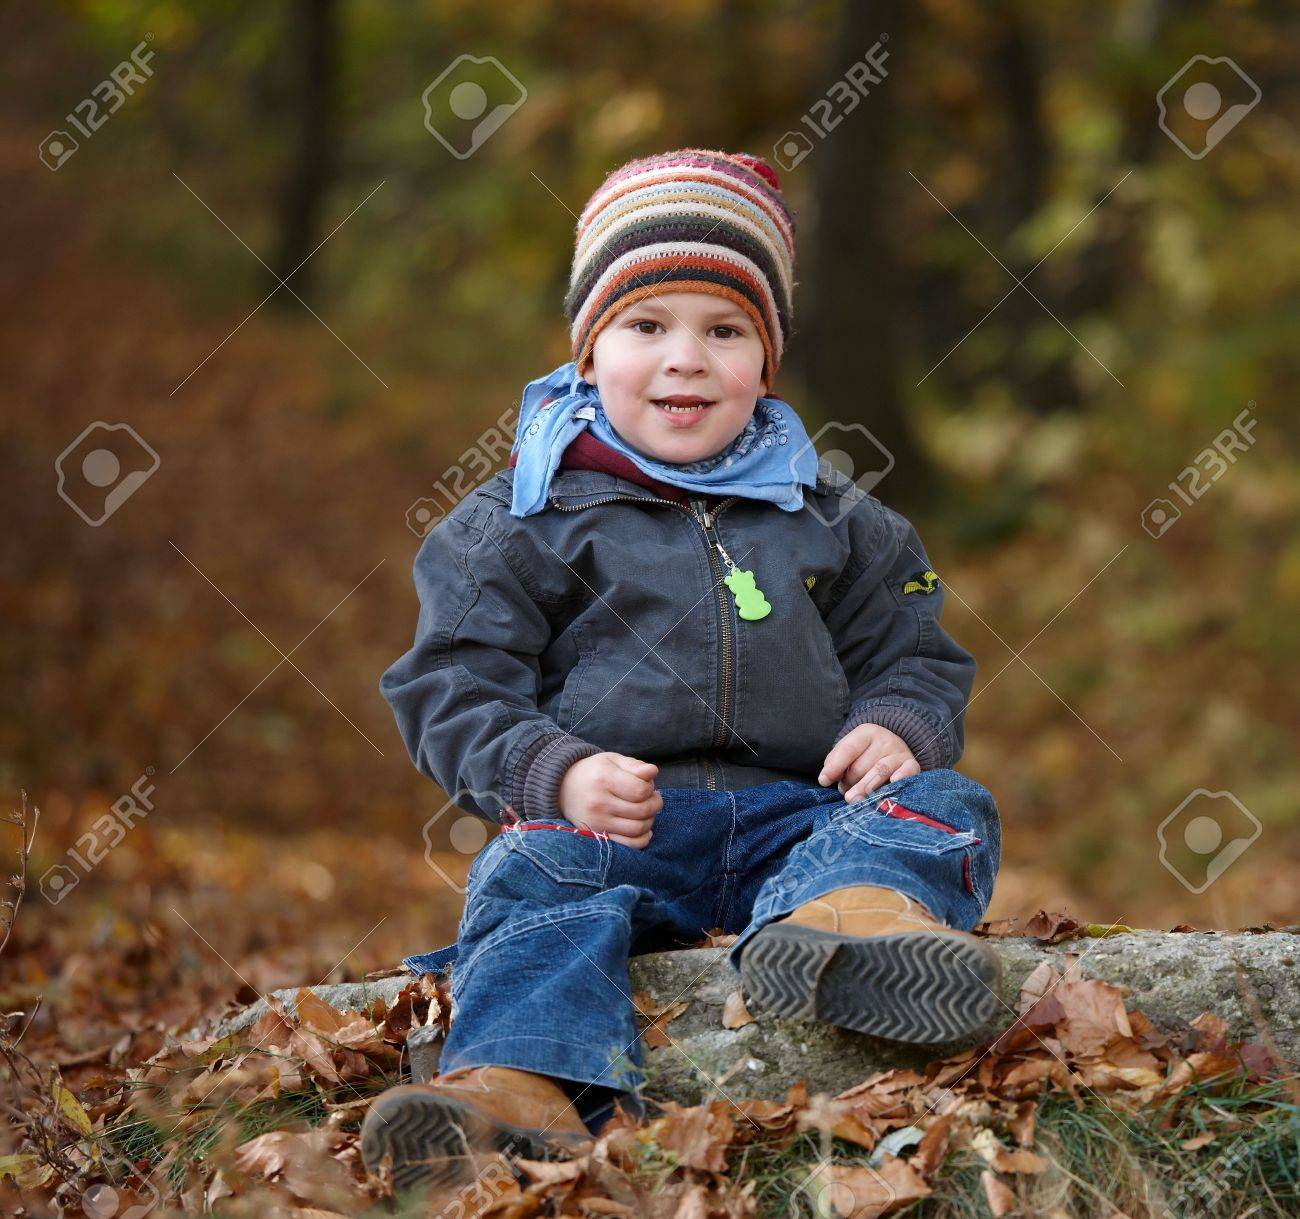 Happy kid in coat and cap playing outdoor in autumn forest, smiling. Stock Photo - 5724719